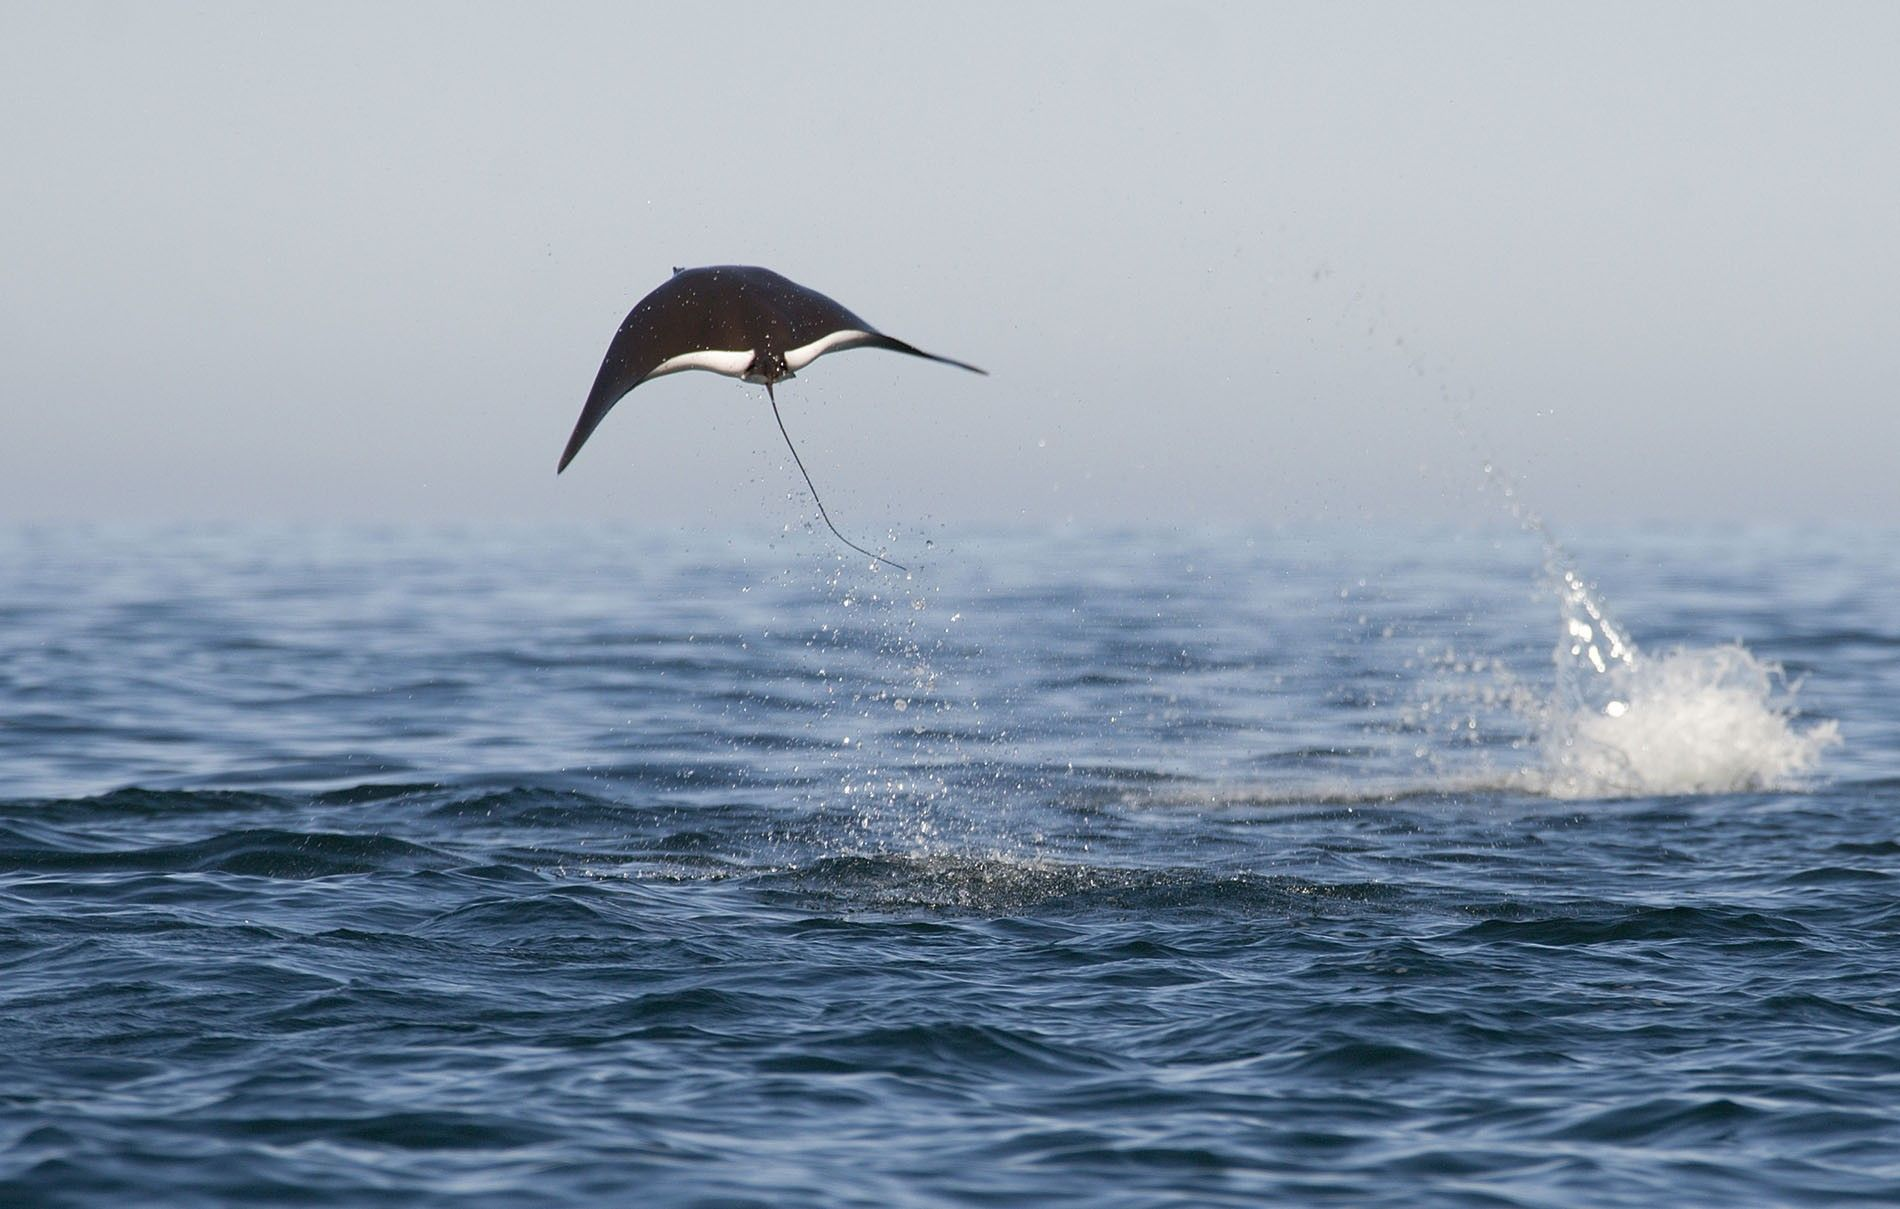 Mobula ray launching itself out of the water.